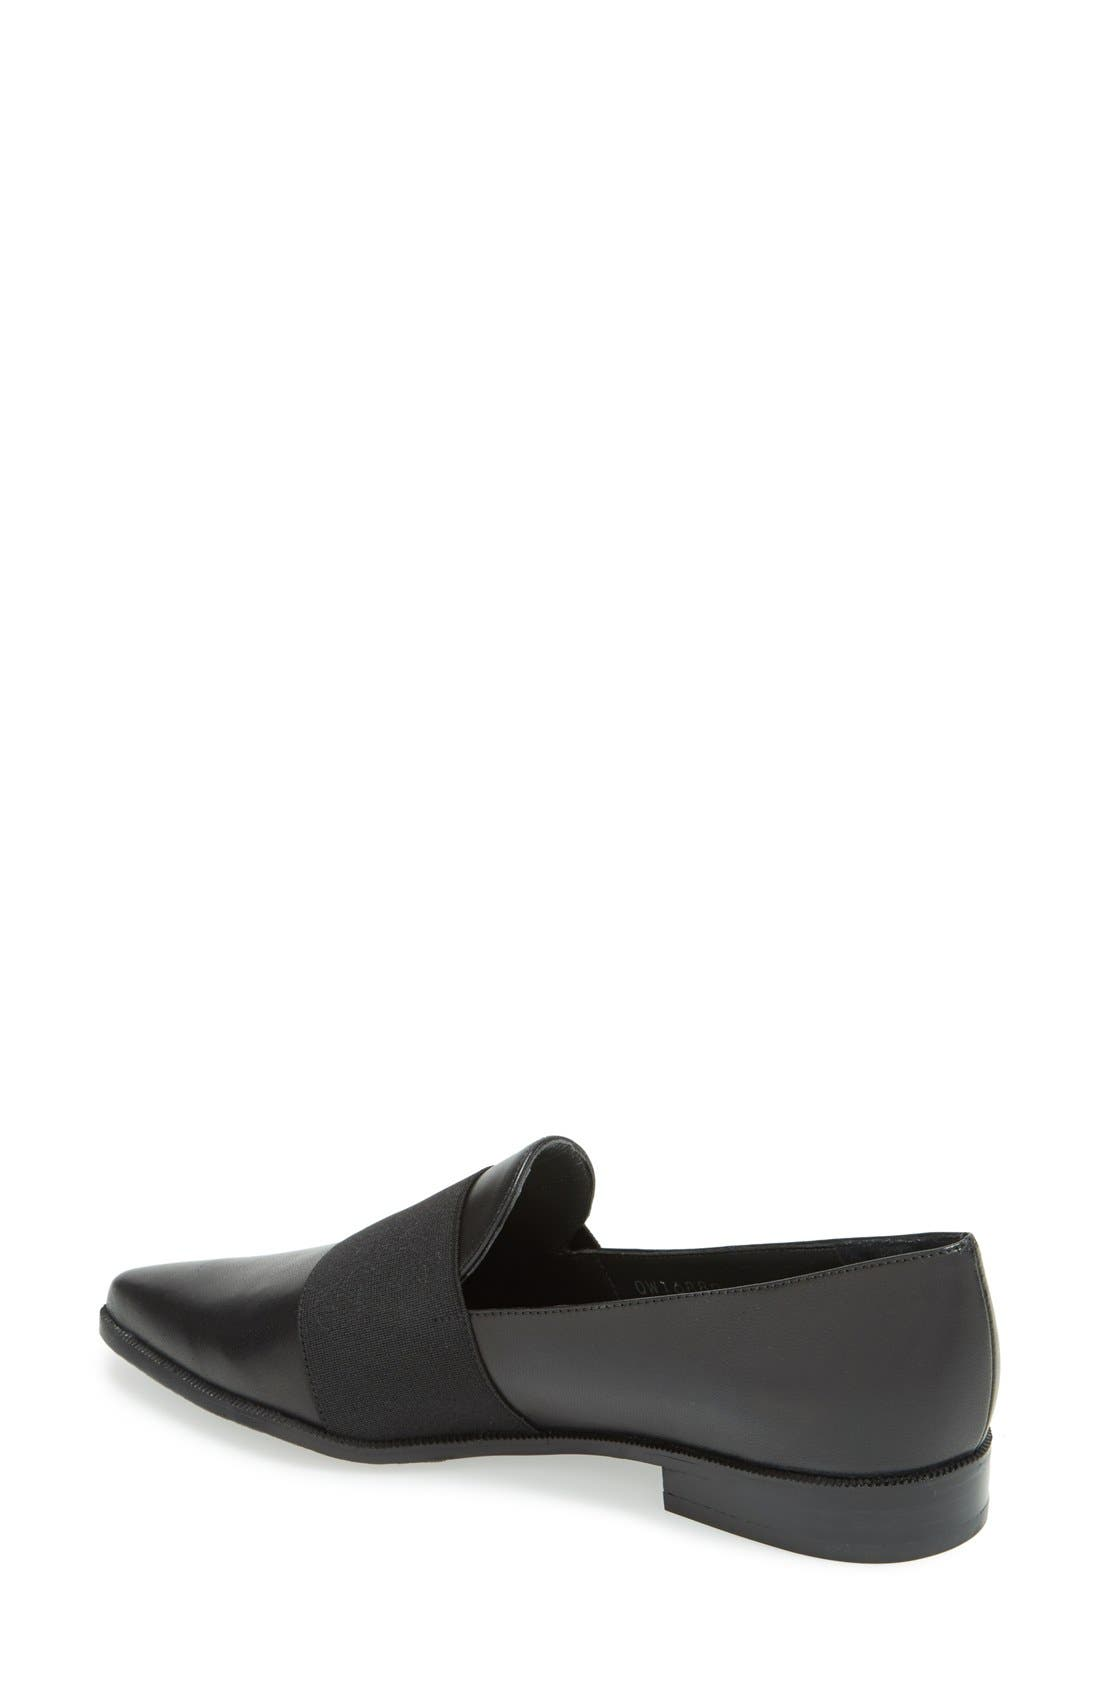 Alternate Image 2  - Stuart Weitzman 'The Band' Flat (Women)